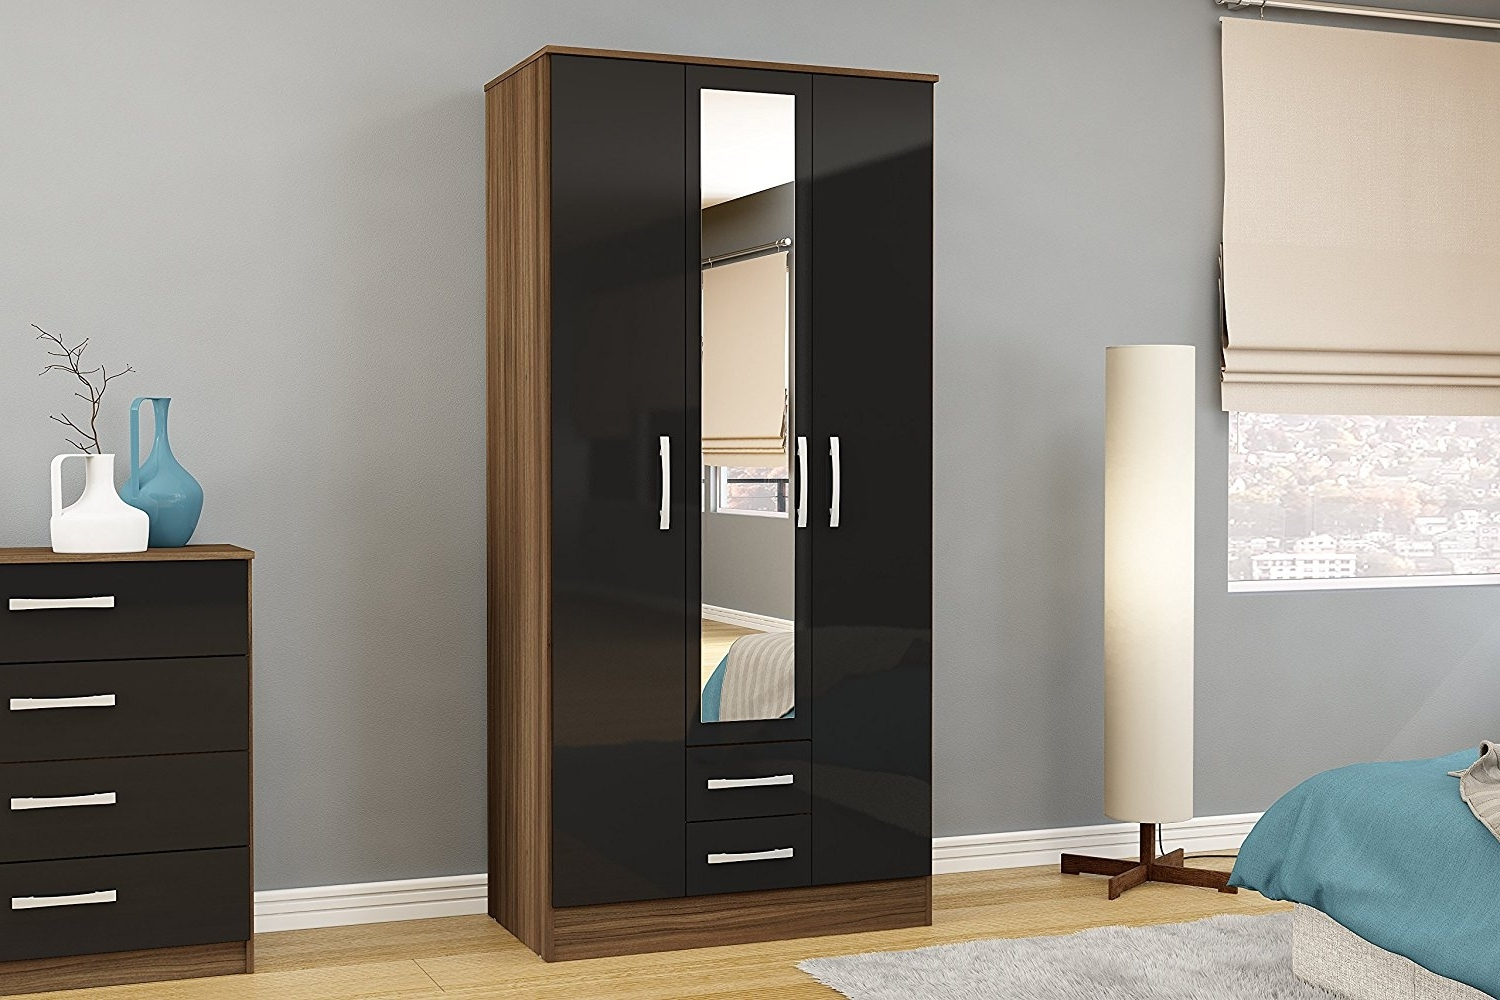 Fashionable Birlea Lynx 3 Door 2 Drawer Wardrobe With Mirror – High Gloss With Regard To Black Wardrobes With Mirror (View 9 of 15)